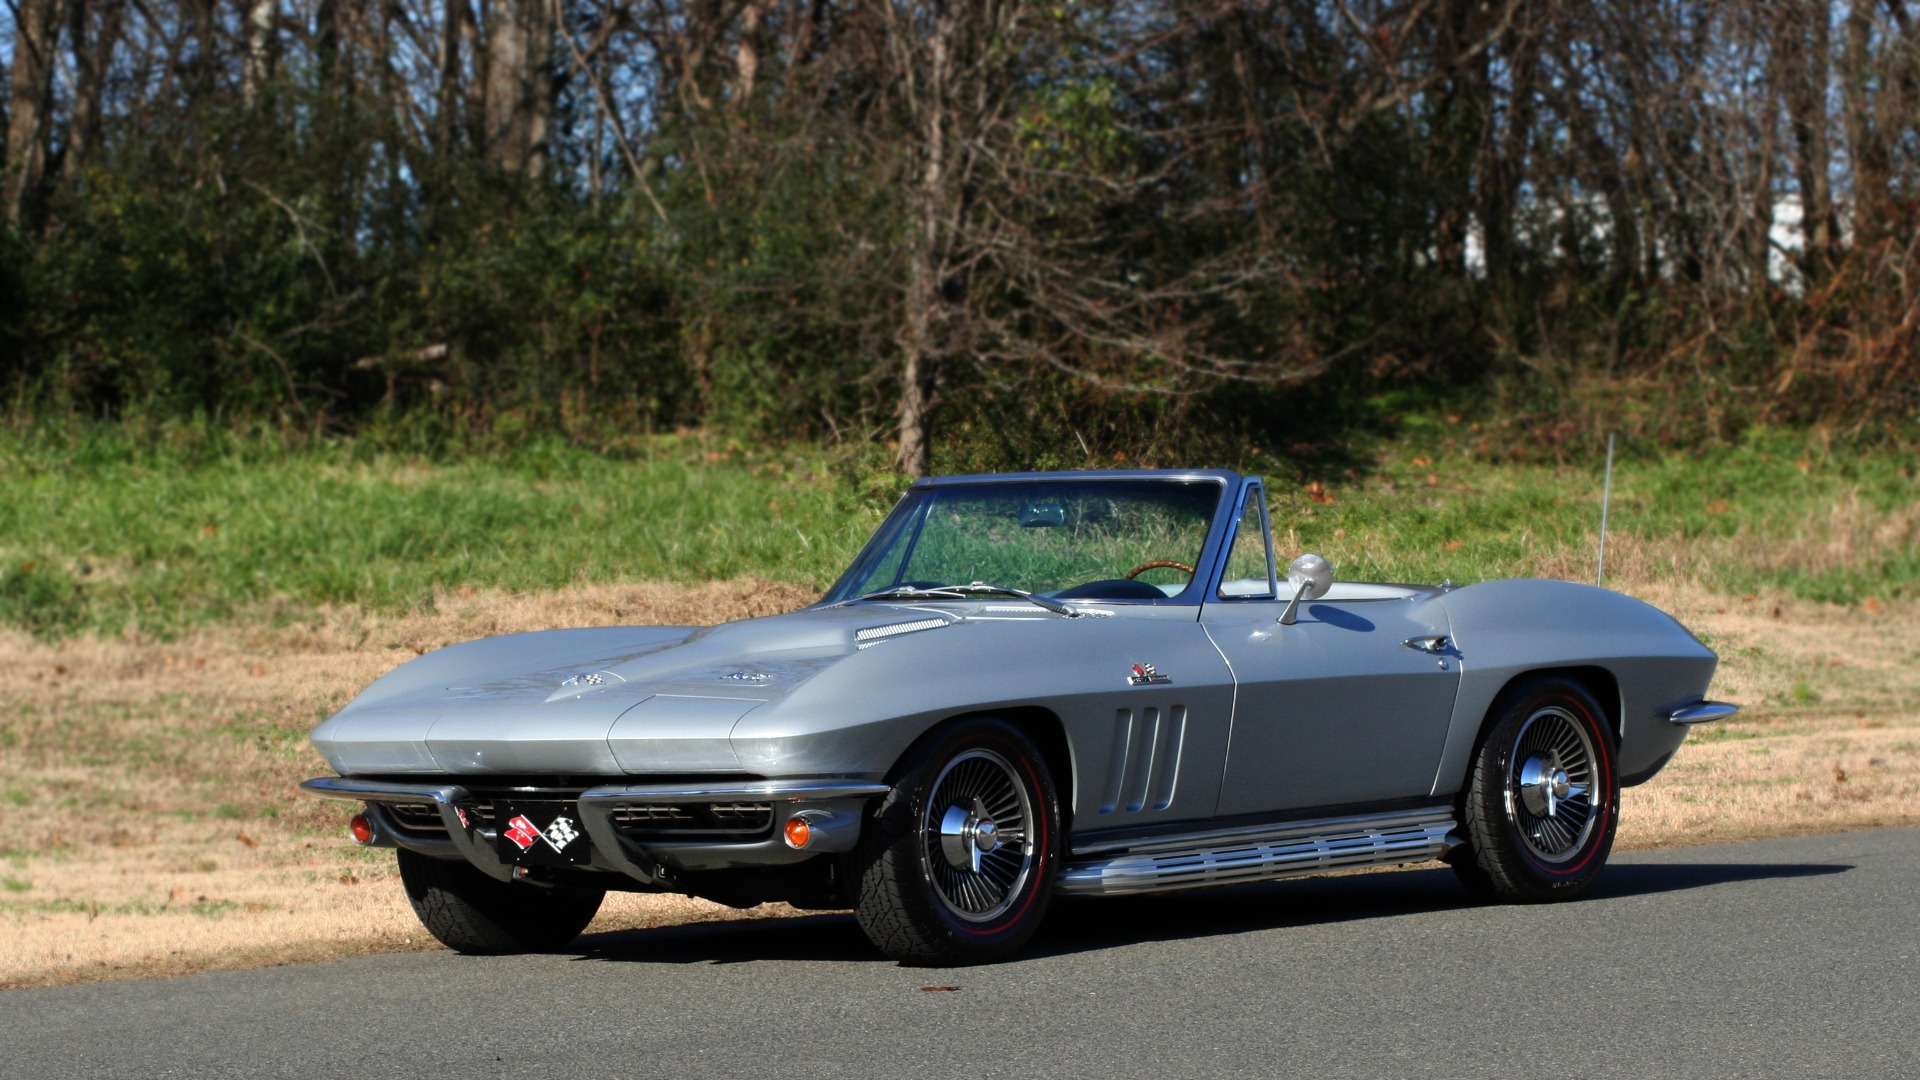 Used 1966 Chevrolet CORVETTE STINGRAY CONVERTIBLE 427 / 4-SPD / NUMBER MATCHING for sale Sold at Formula Imports in Charlotte NC 28227 1